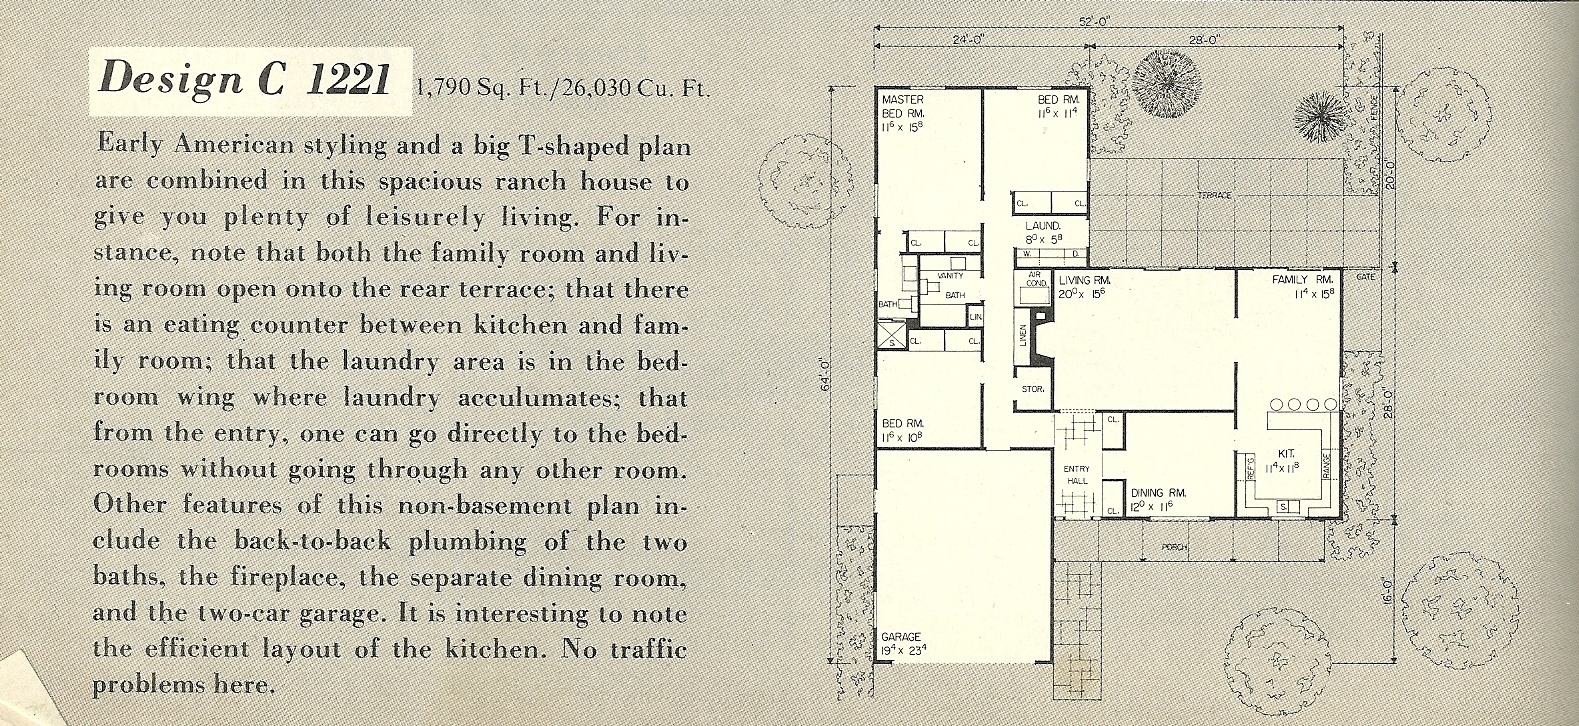 Vintage house plans 1221a antique alter ego - T shaped house plans ...